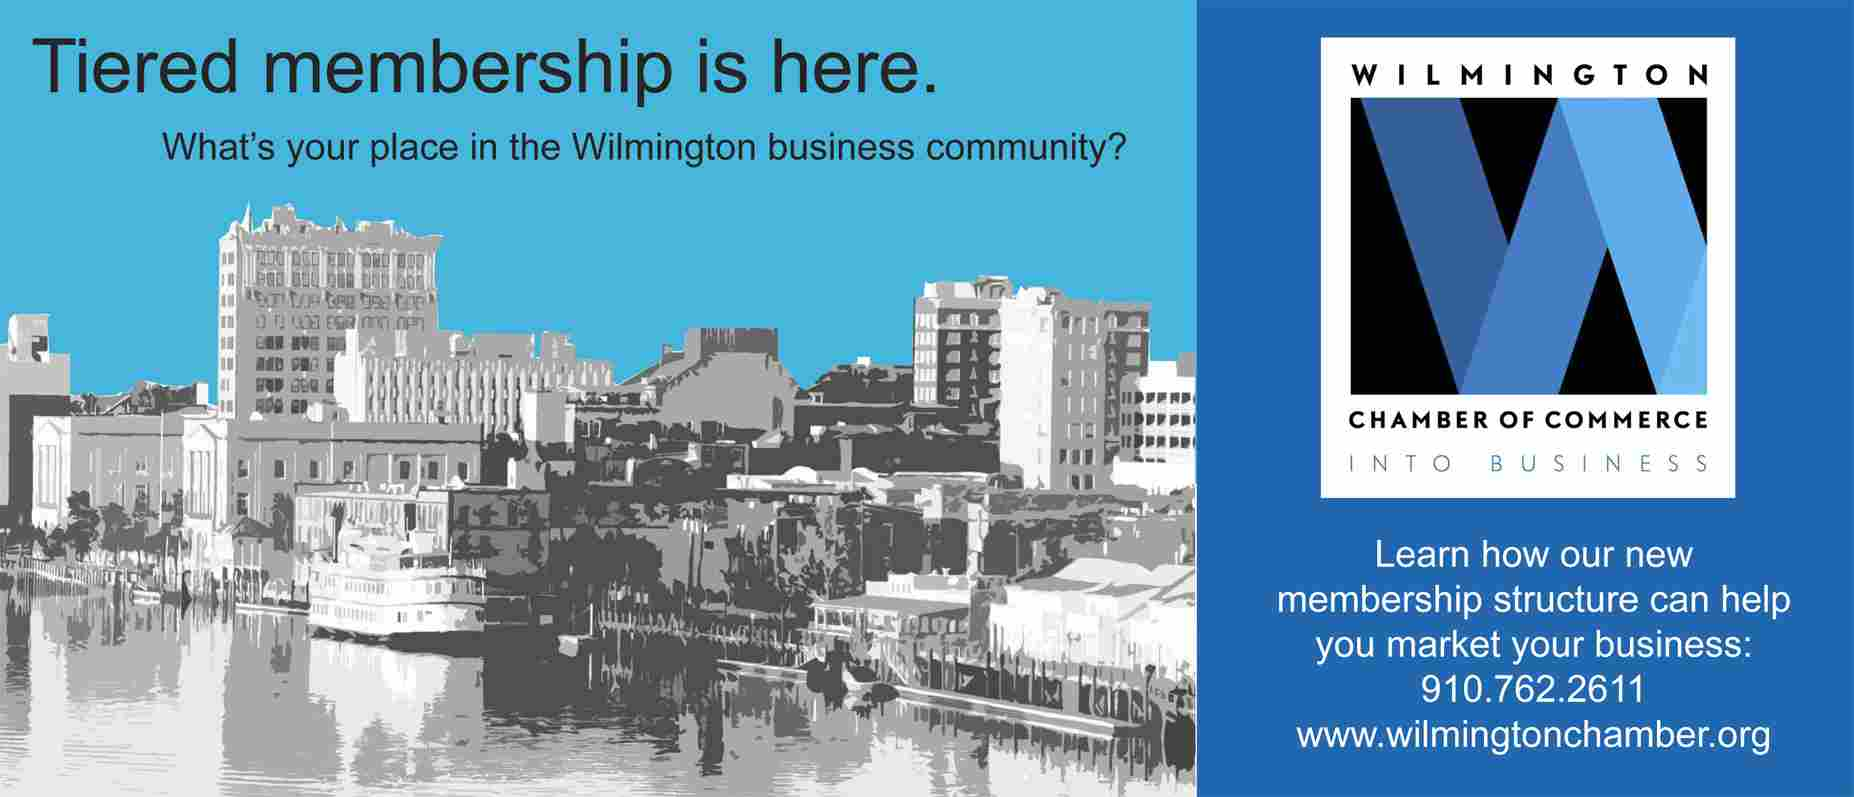 Greater Wilmington Chamber of Commerce